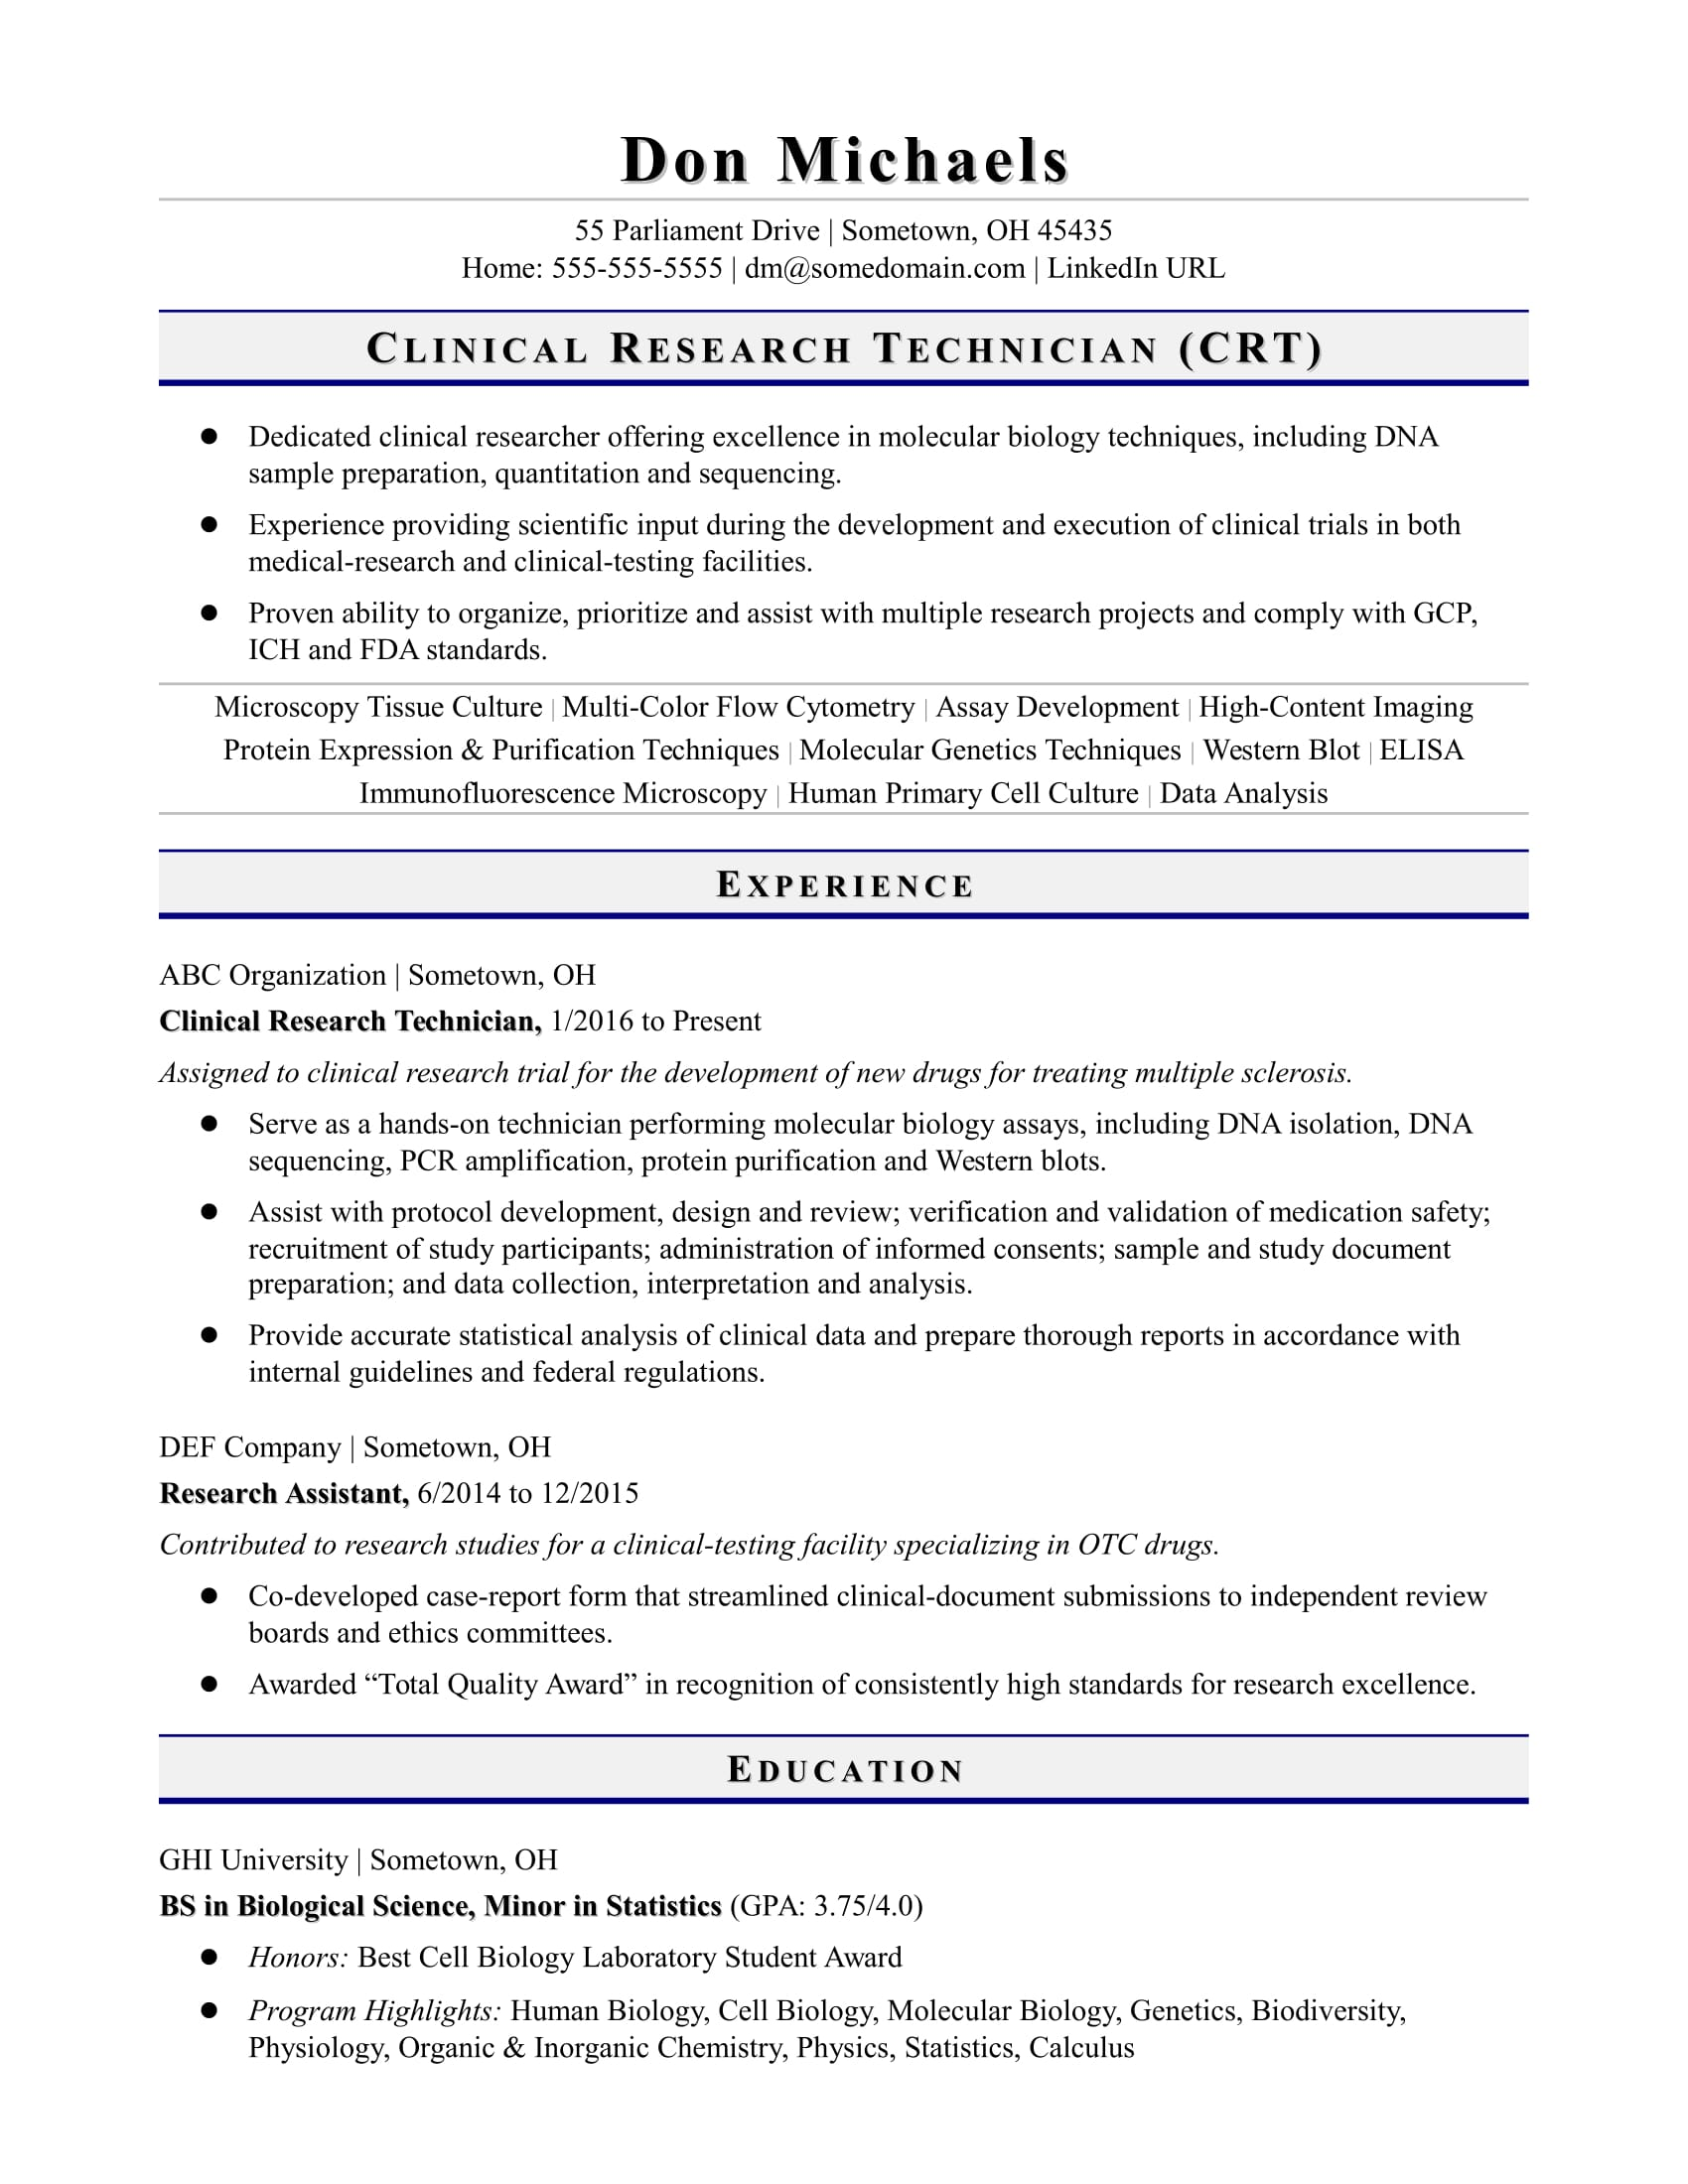 entry level research technician resume sample monster with experience first aid certified Resume Resume With Research Experience